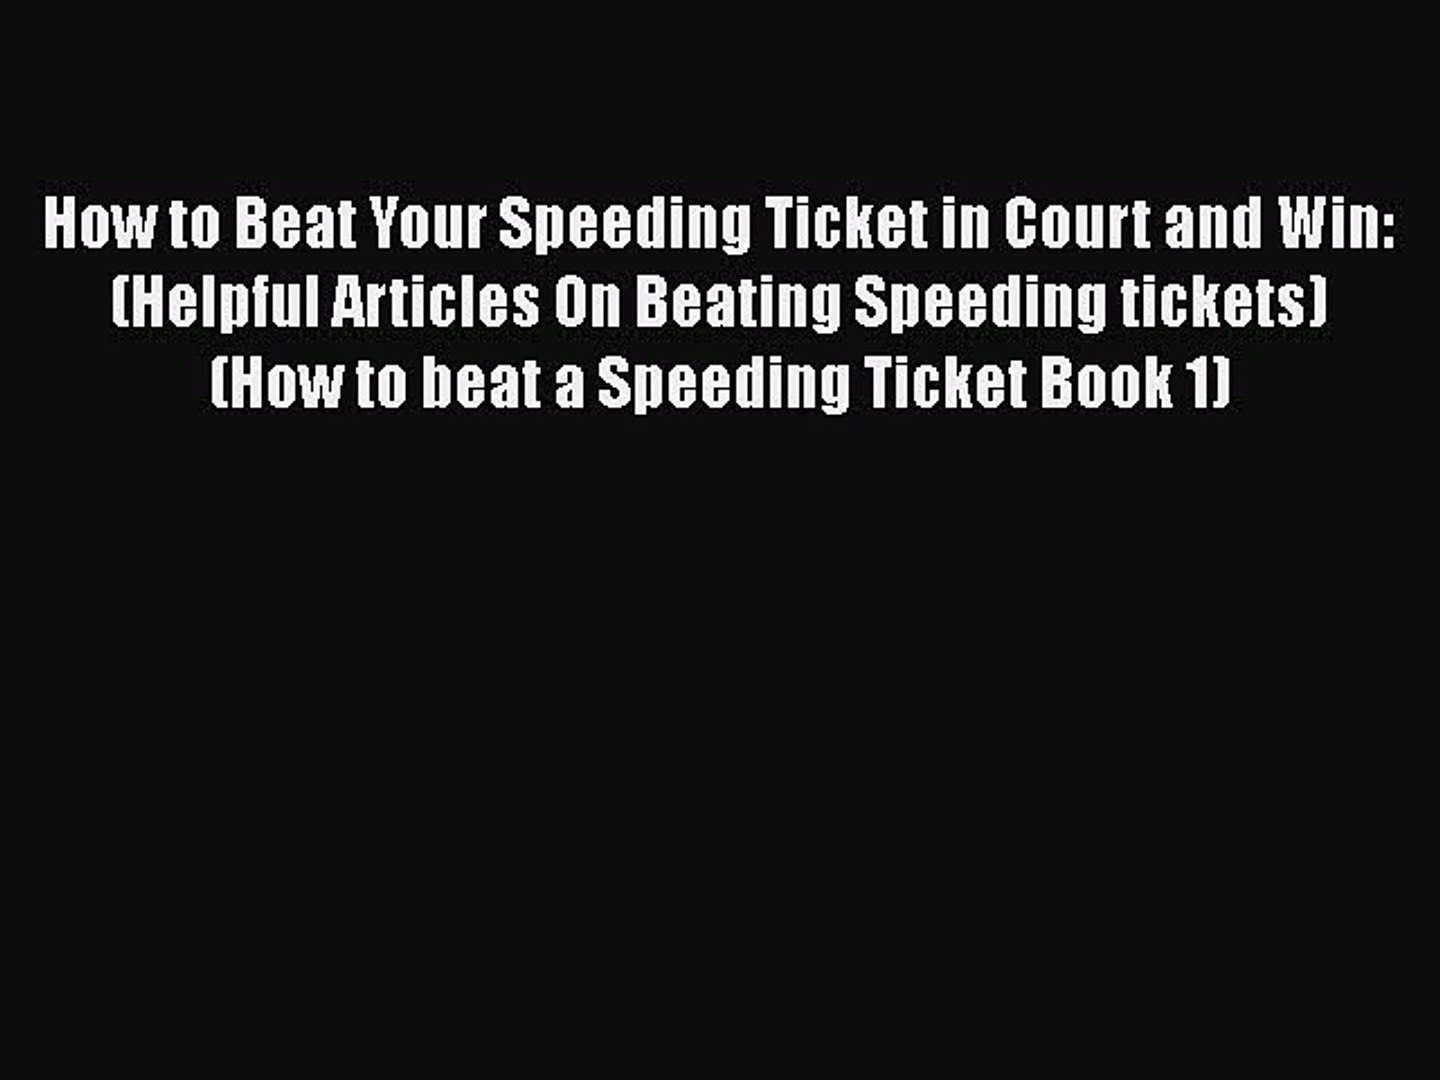 How To Beat A Speeding Ticket >> Download How To Beat Your Speeding Ticket In Court And Win Helpful Articles On Beating Speeding